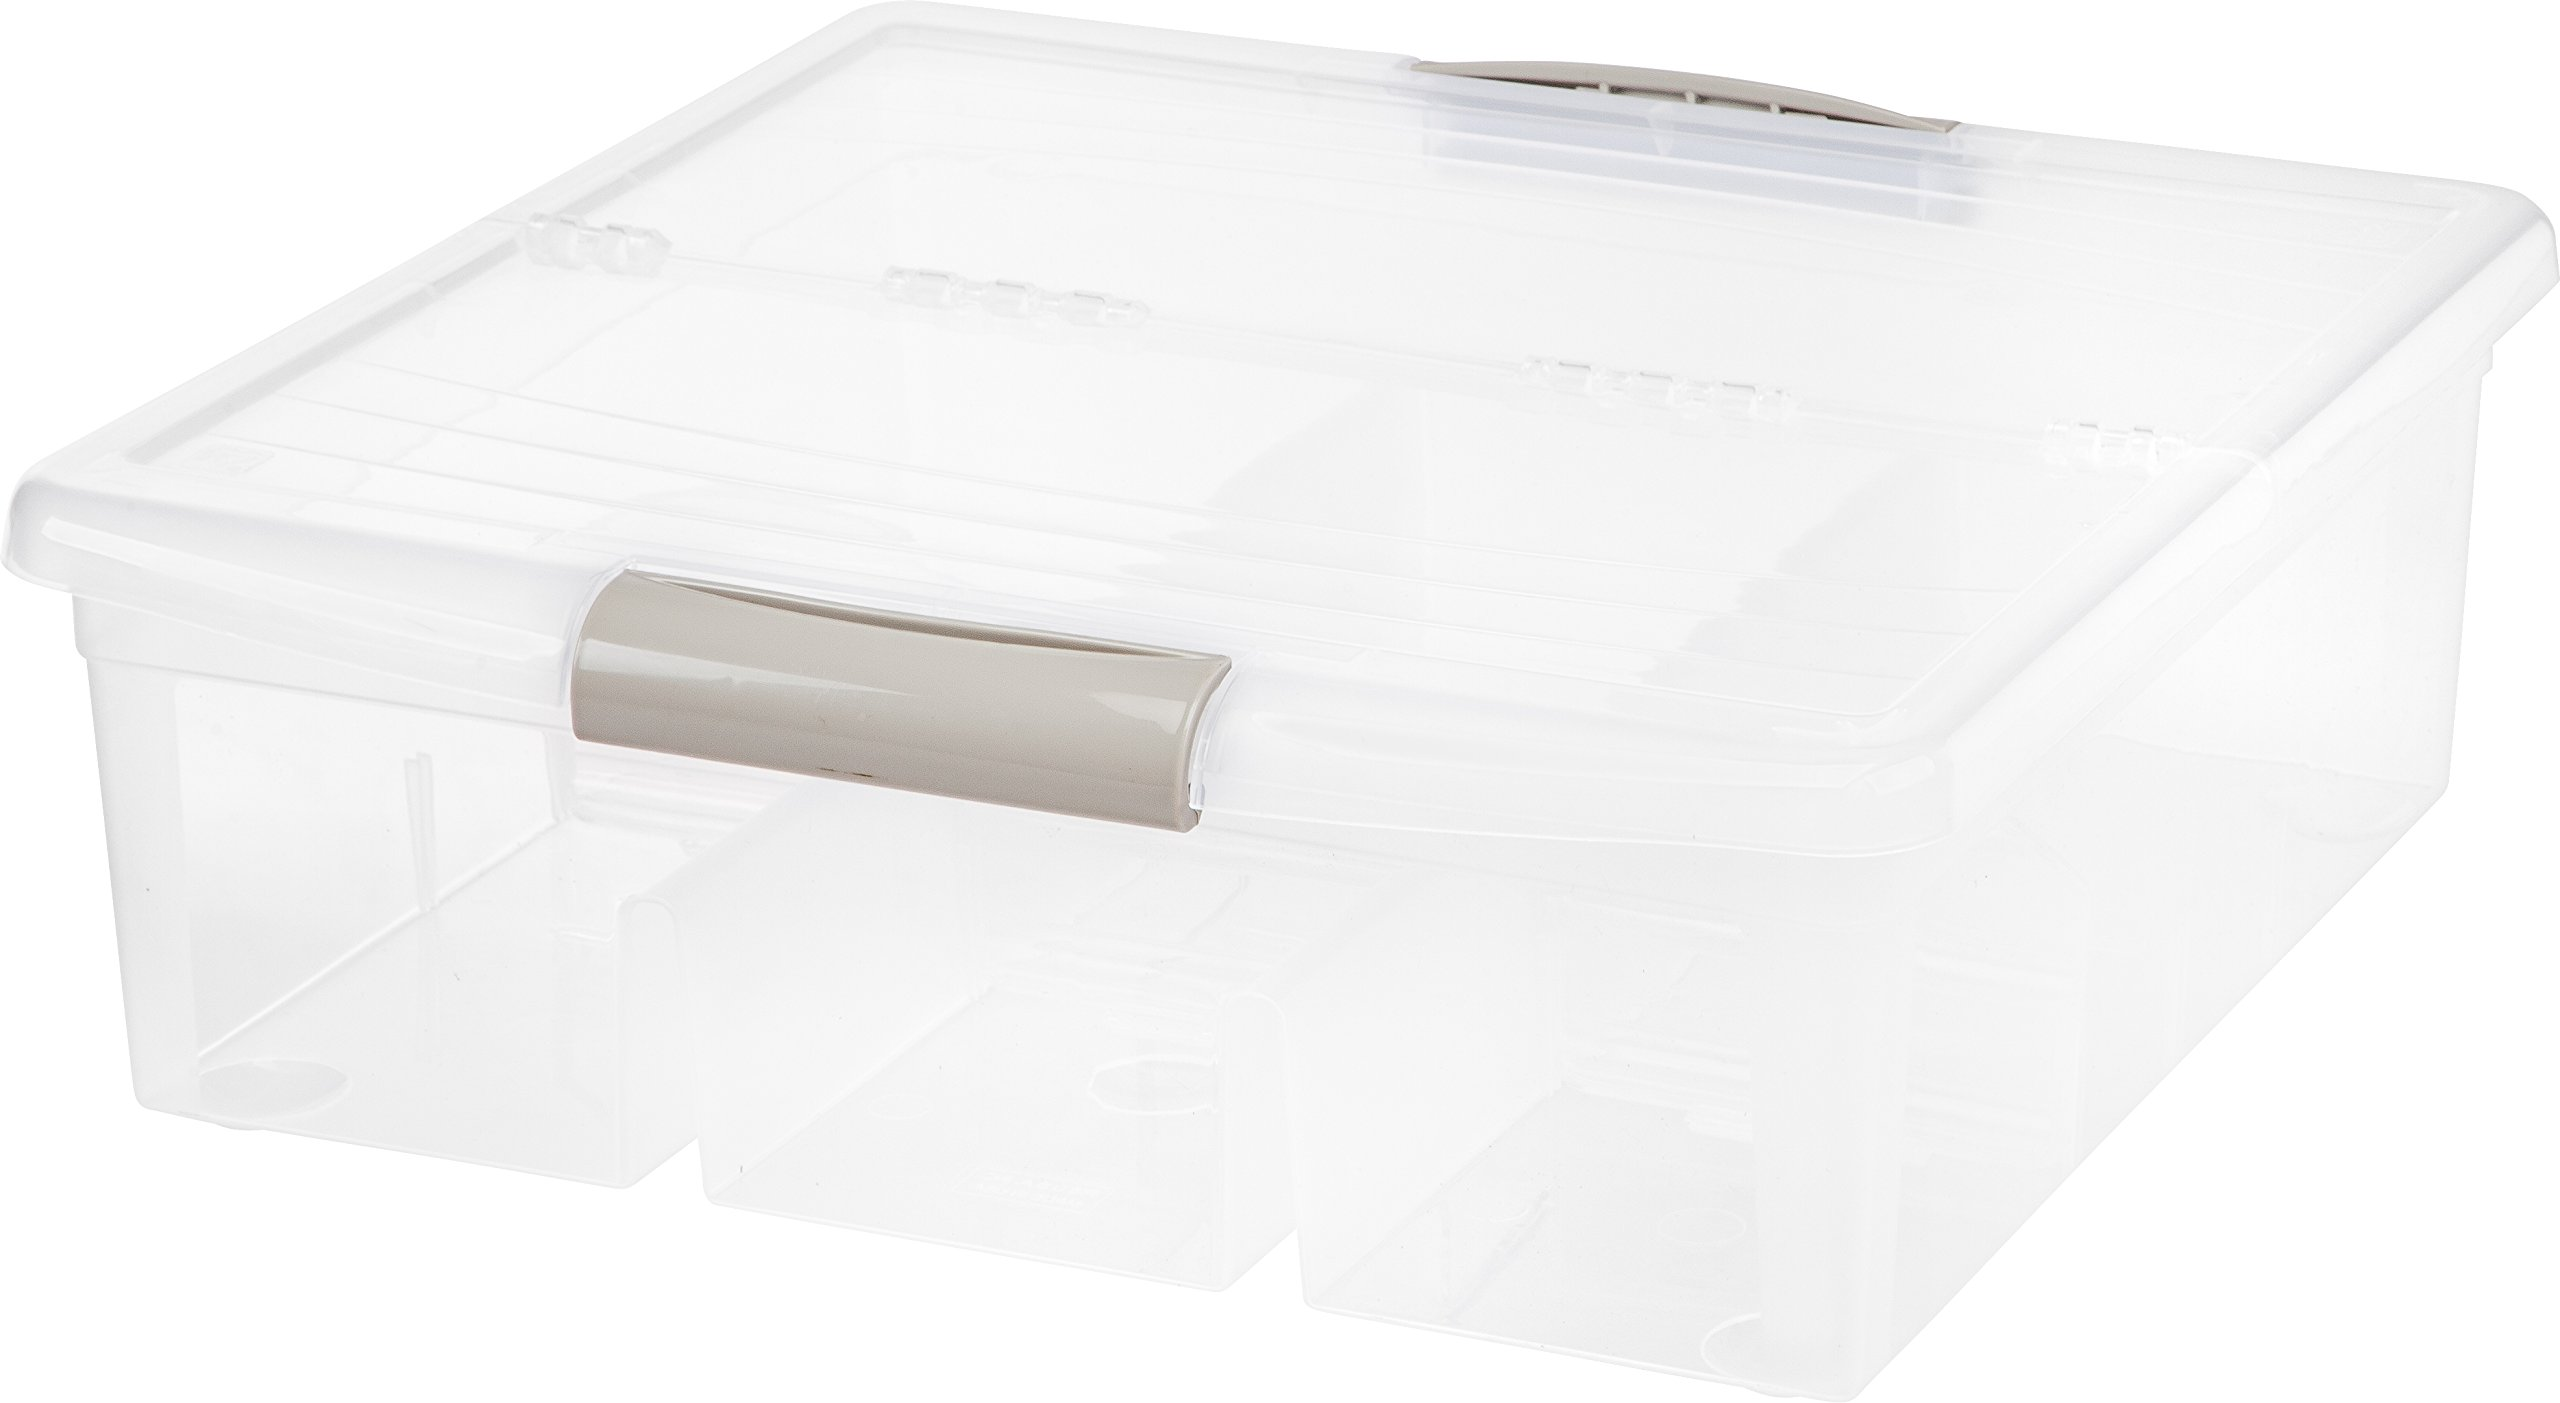 IRIS Large Divided Media Storage Box, Clear by IRIS USA, Inc.